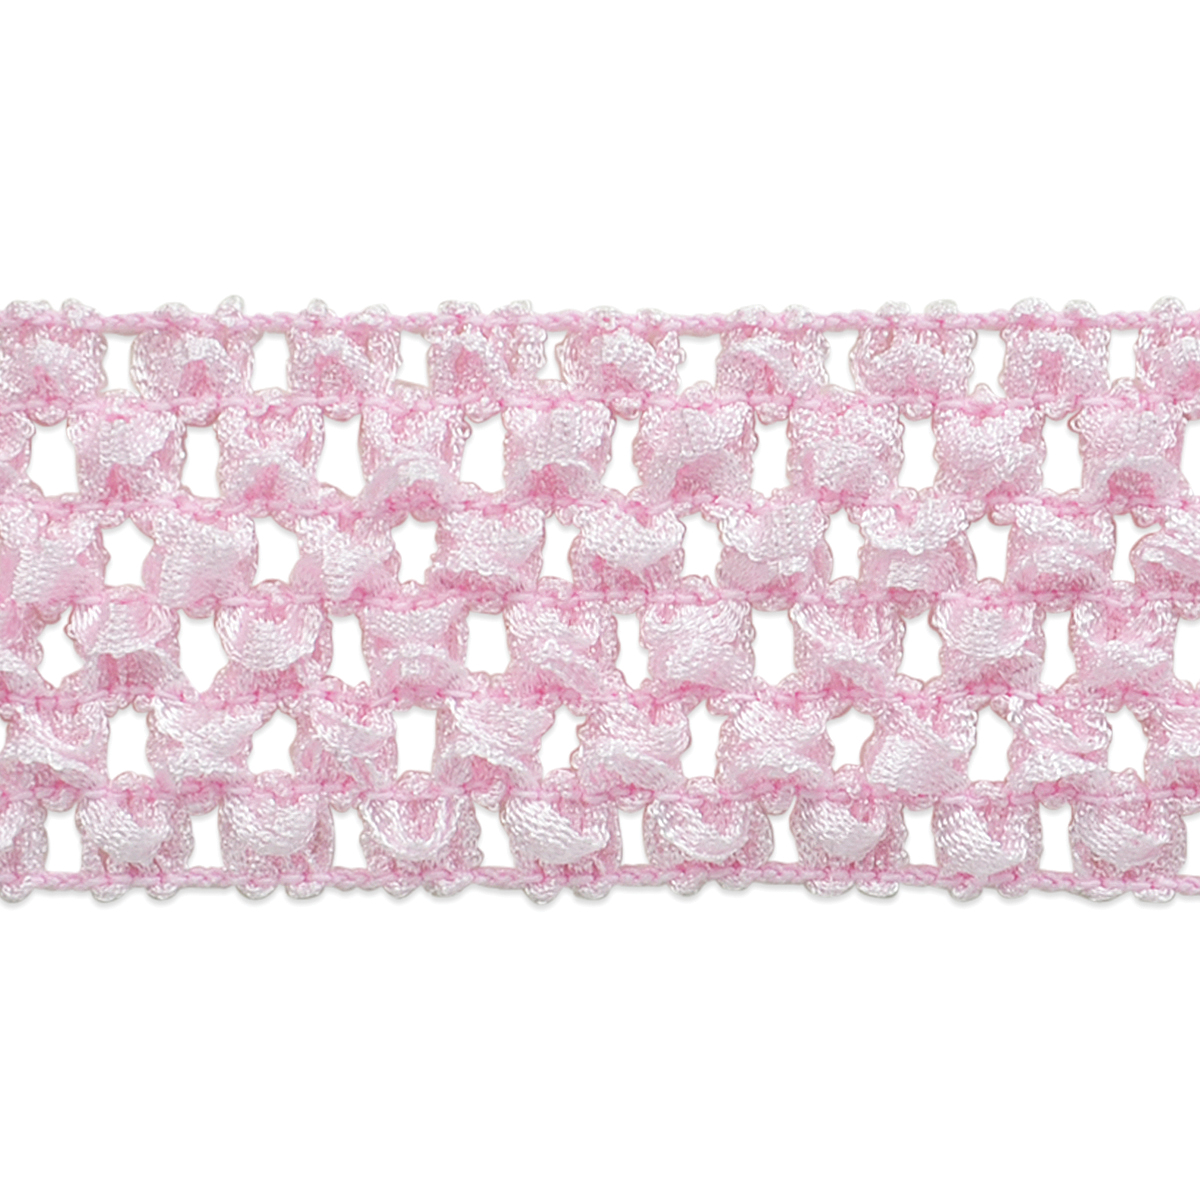 Crochet Headband Stretch Trim 1-3/4\u0022 Wide 20 Yards-Pink